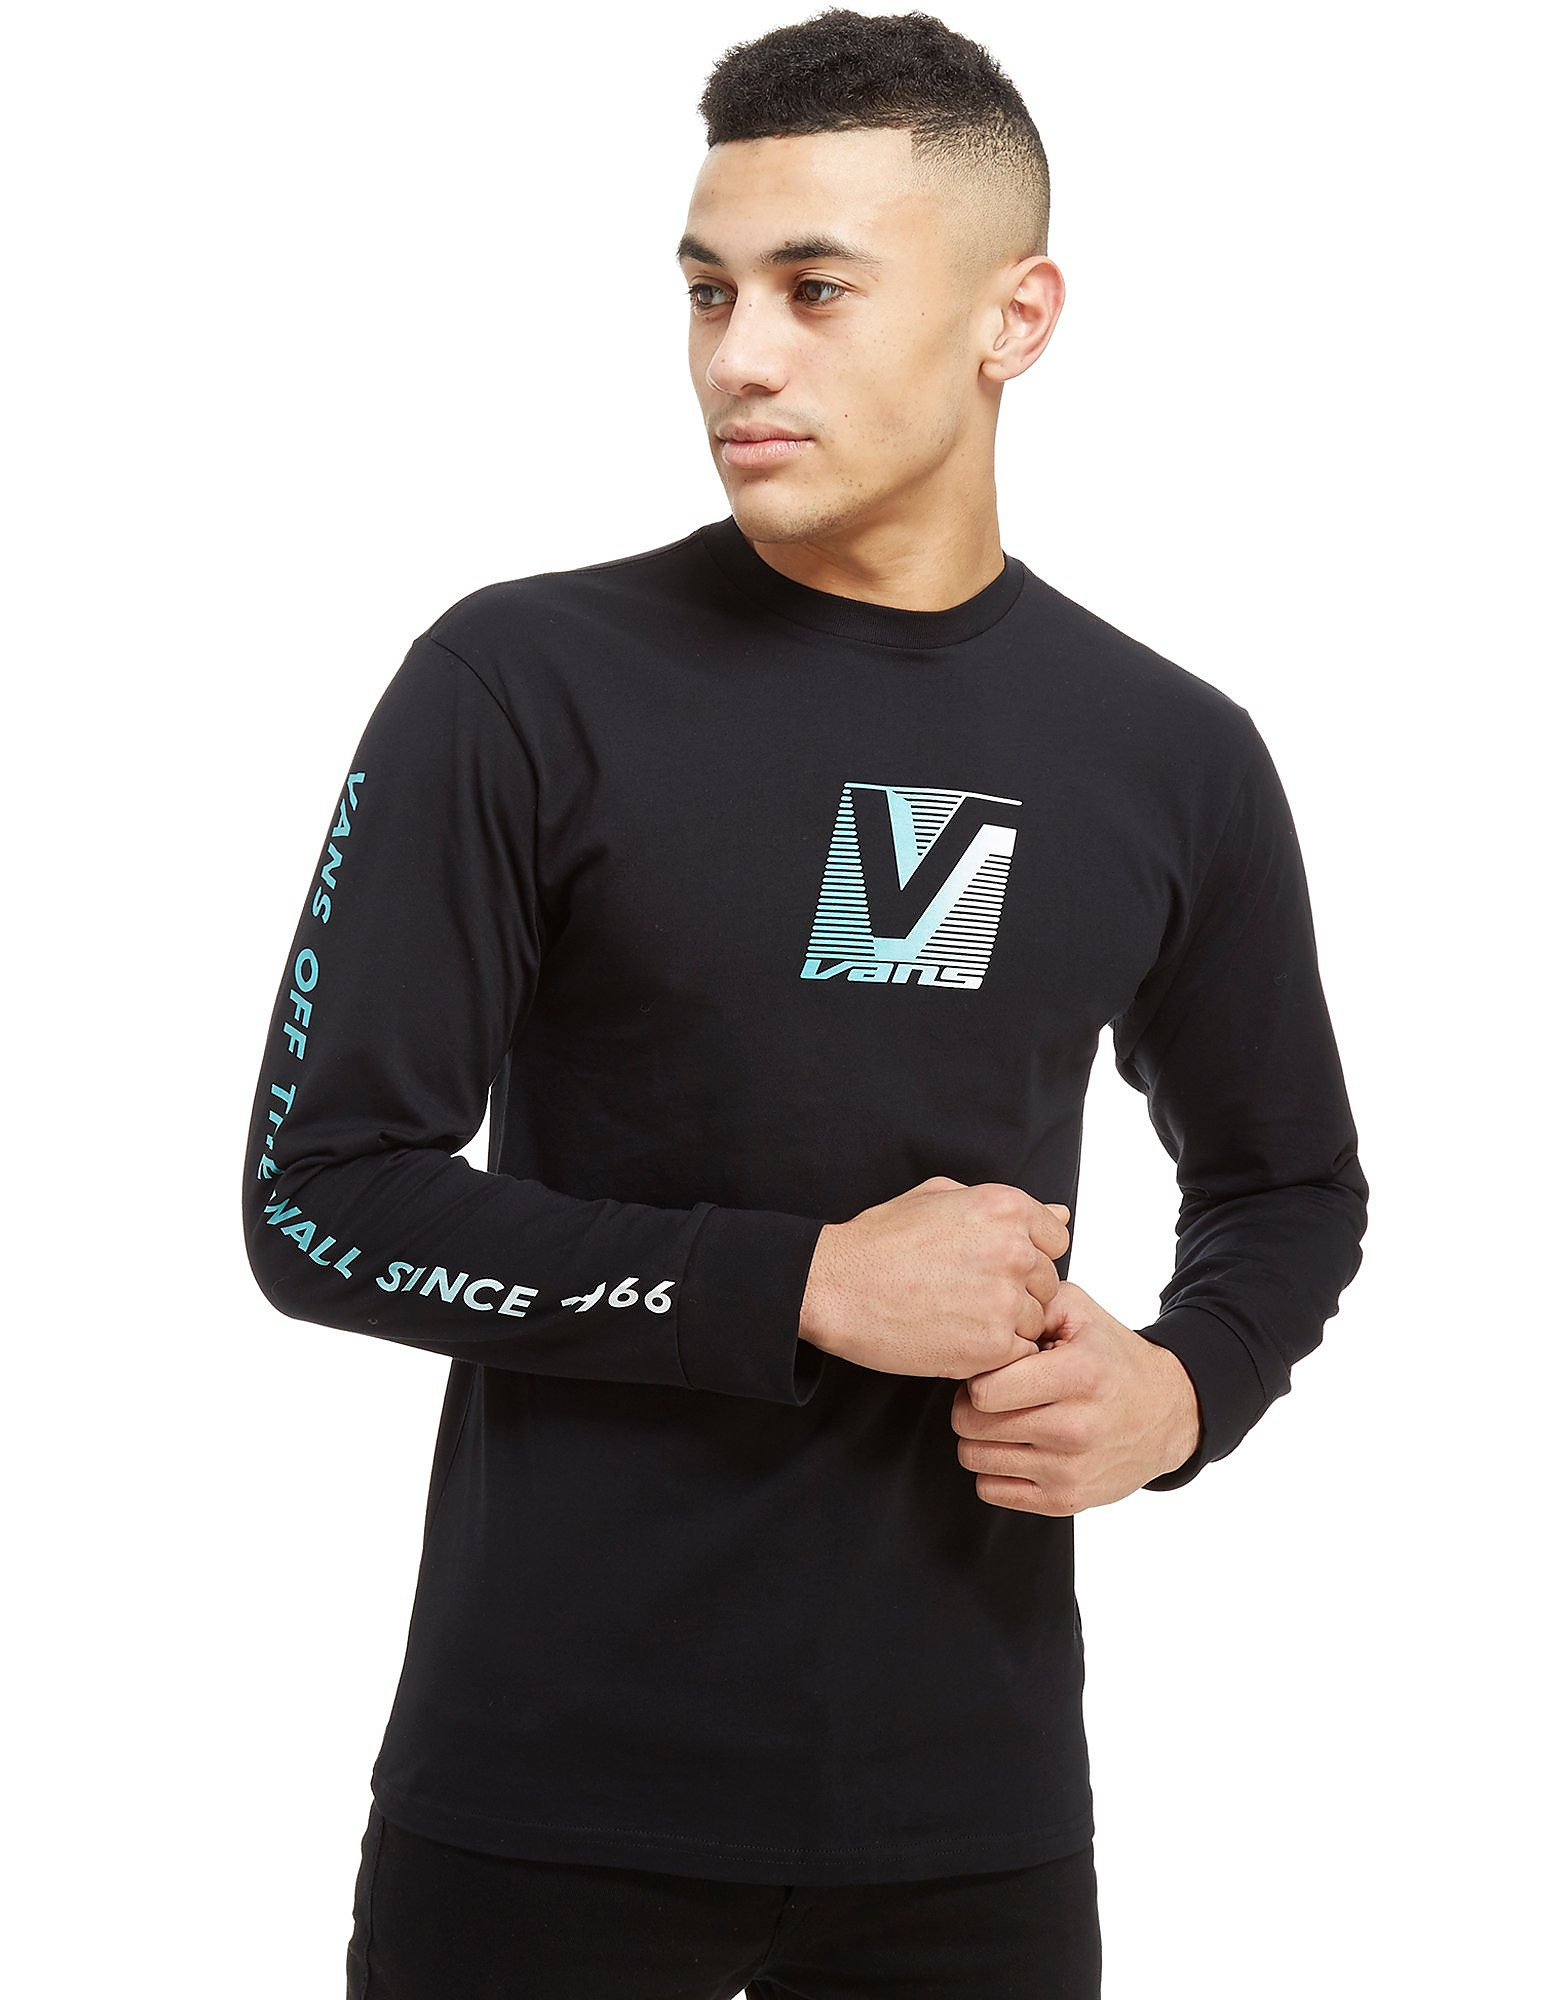 Vans Grand V Fade Long Sleeve T-Shirt